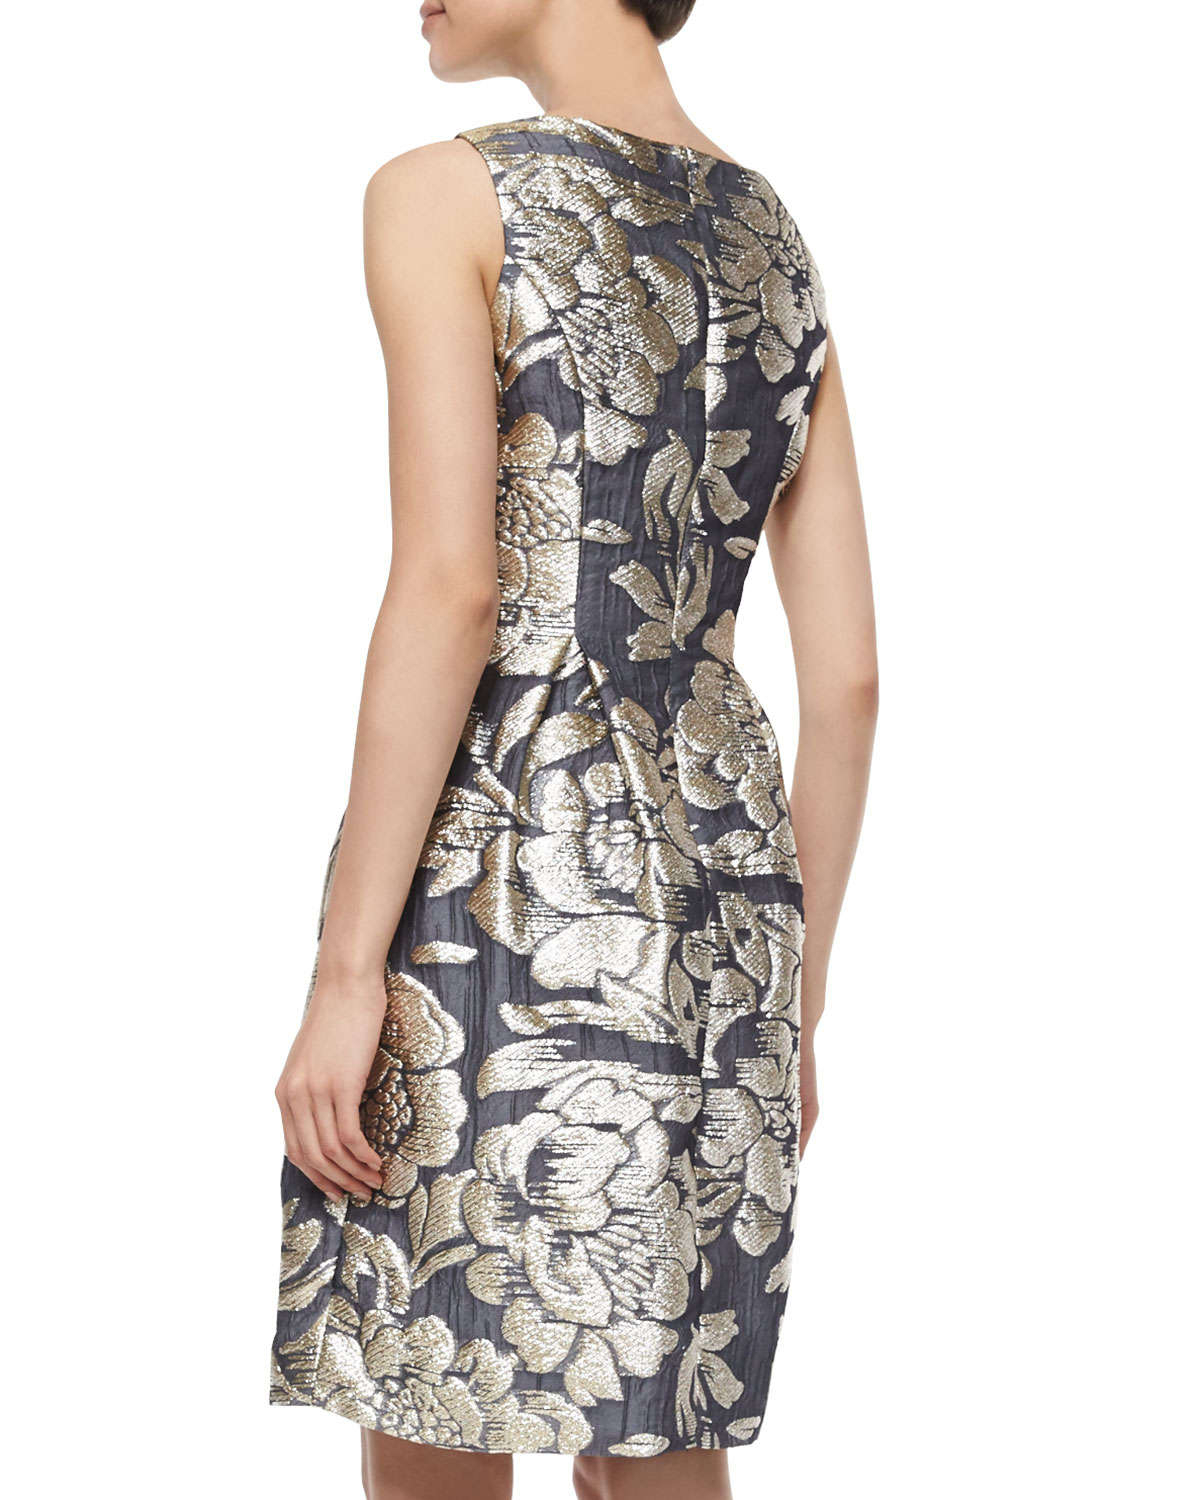 Lela Rose Metallic Floral Jacquard Dress In Black Lyst